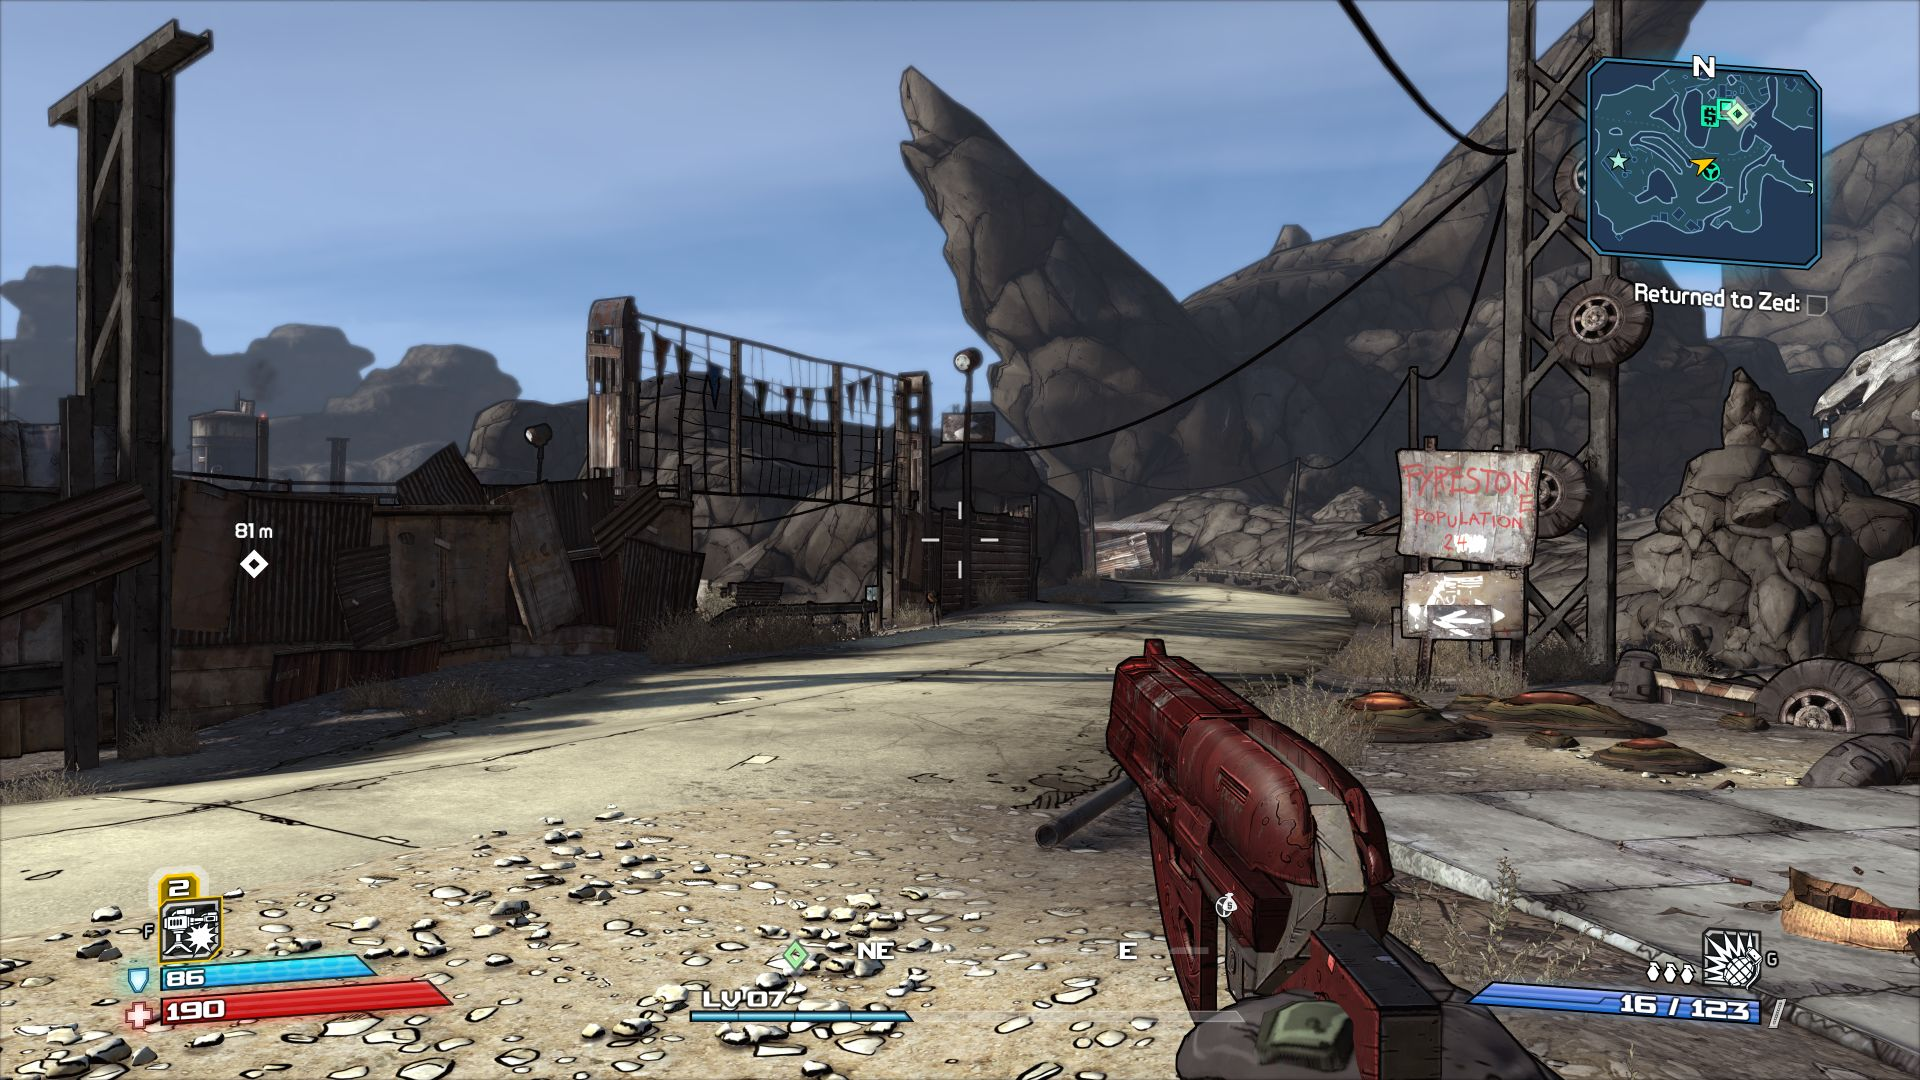 borderlandsgotyenhanced-screenshot-2019-04-03-21-59-08-19